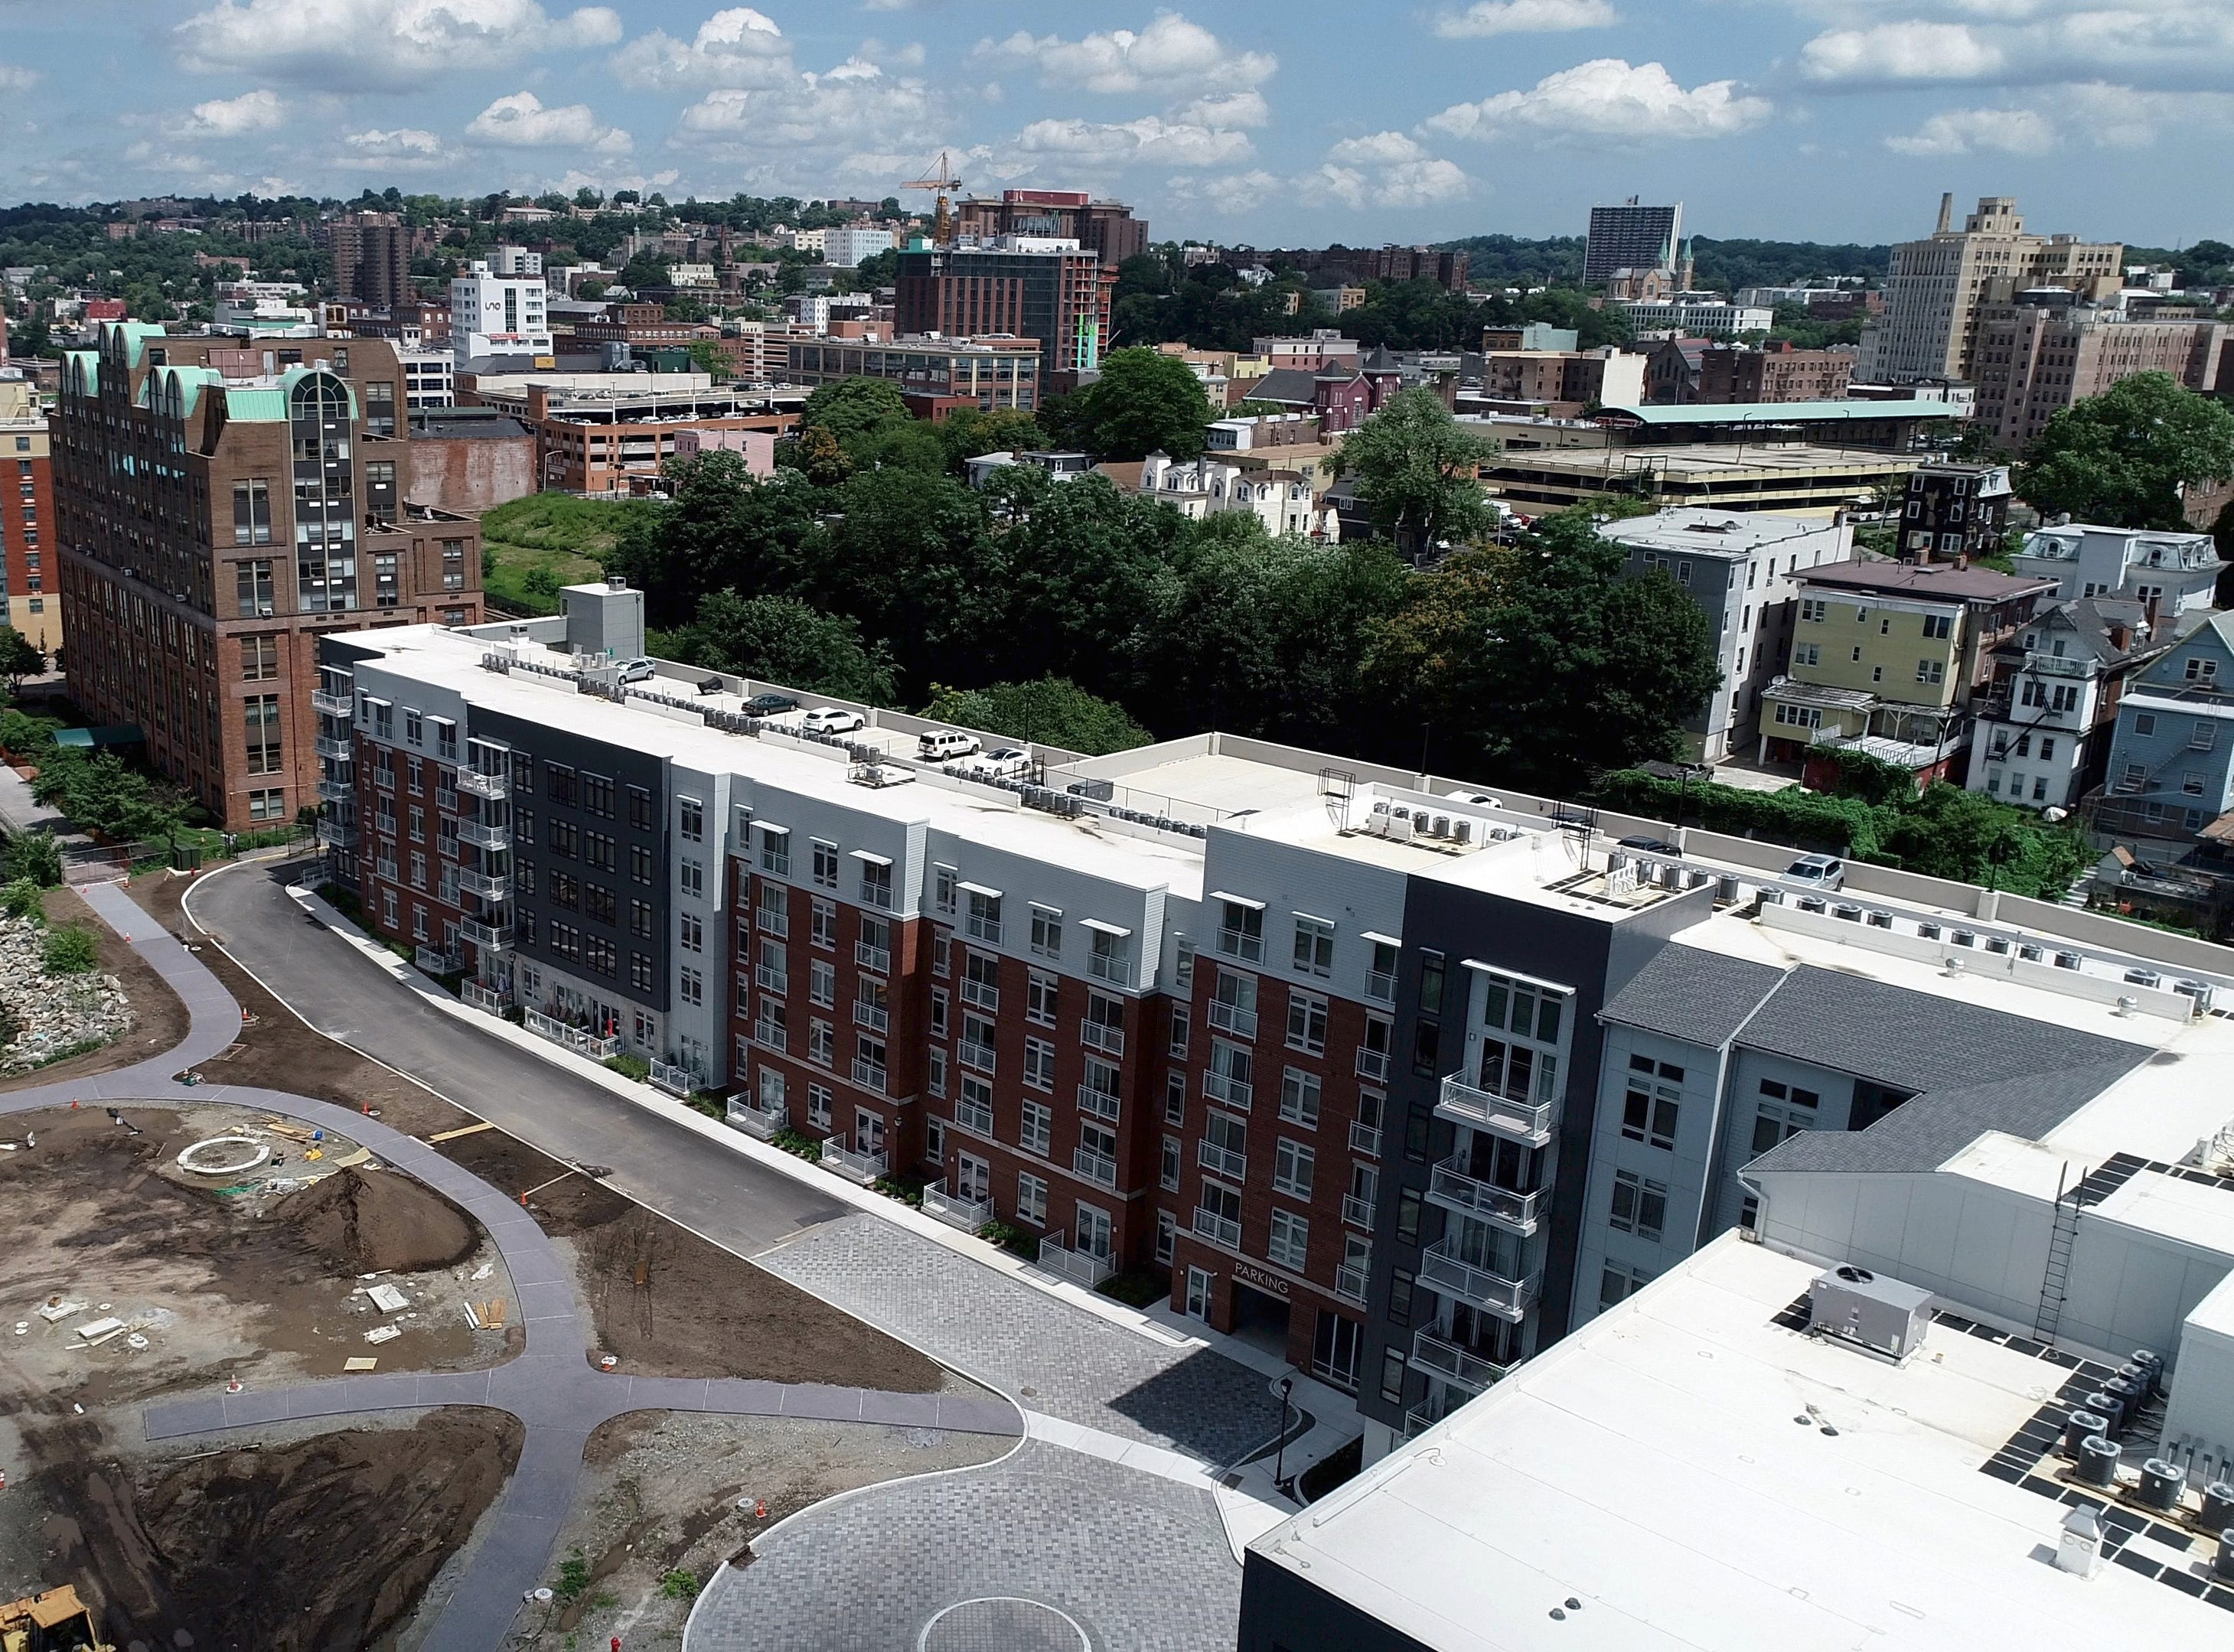 The Modera development site in Yonkers Aug. 2, 2018.